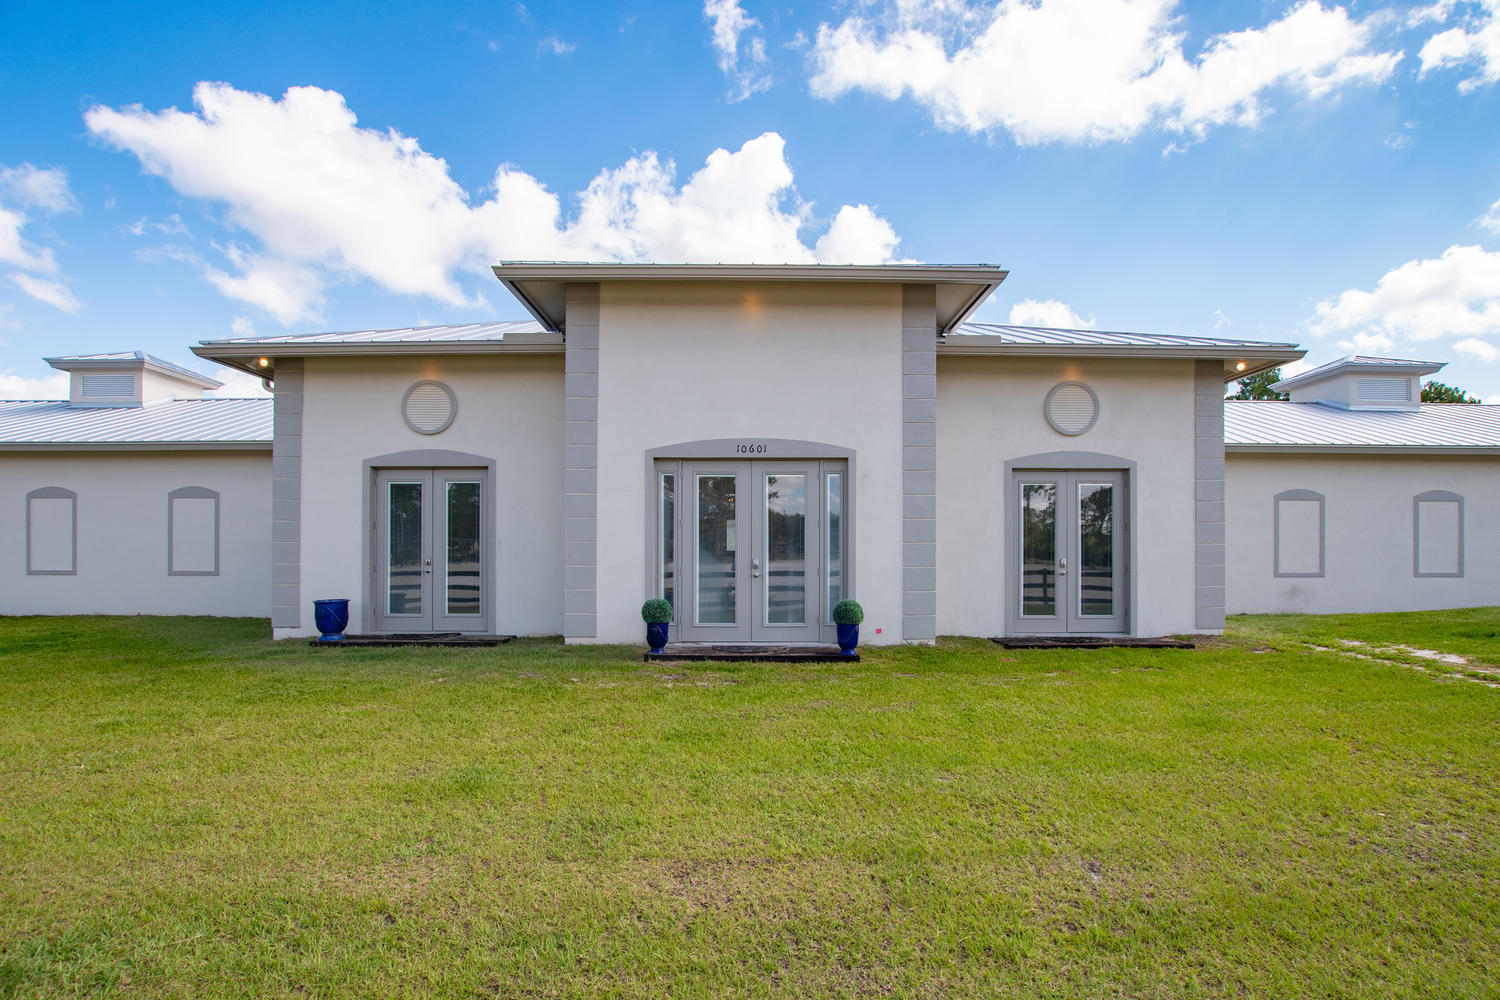 Lake Worth, Florida 33449, 3 Bedrooms Bedrooms, ,2.2 BathroomsBathrooms,Barn,For Rent,RX-10535523